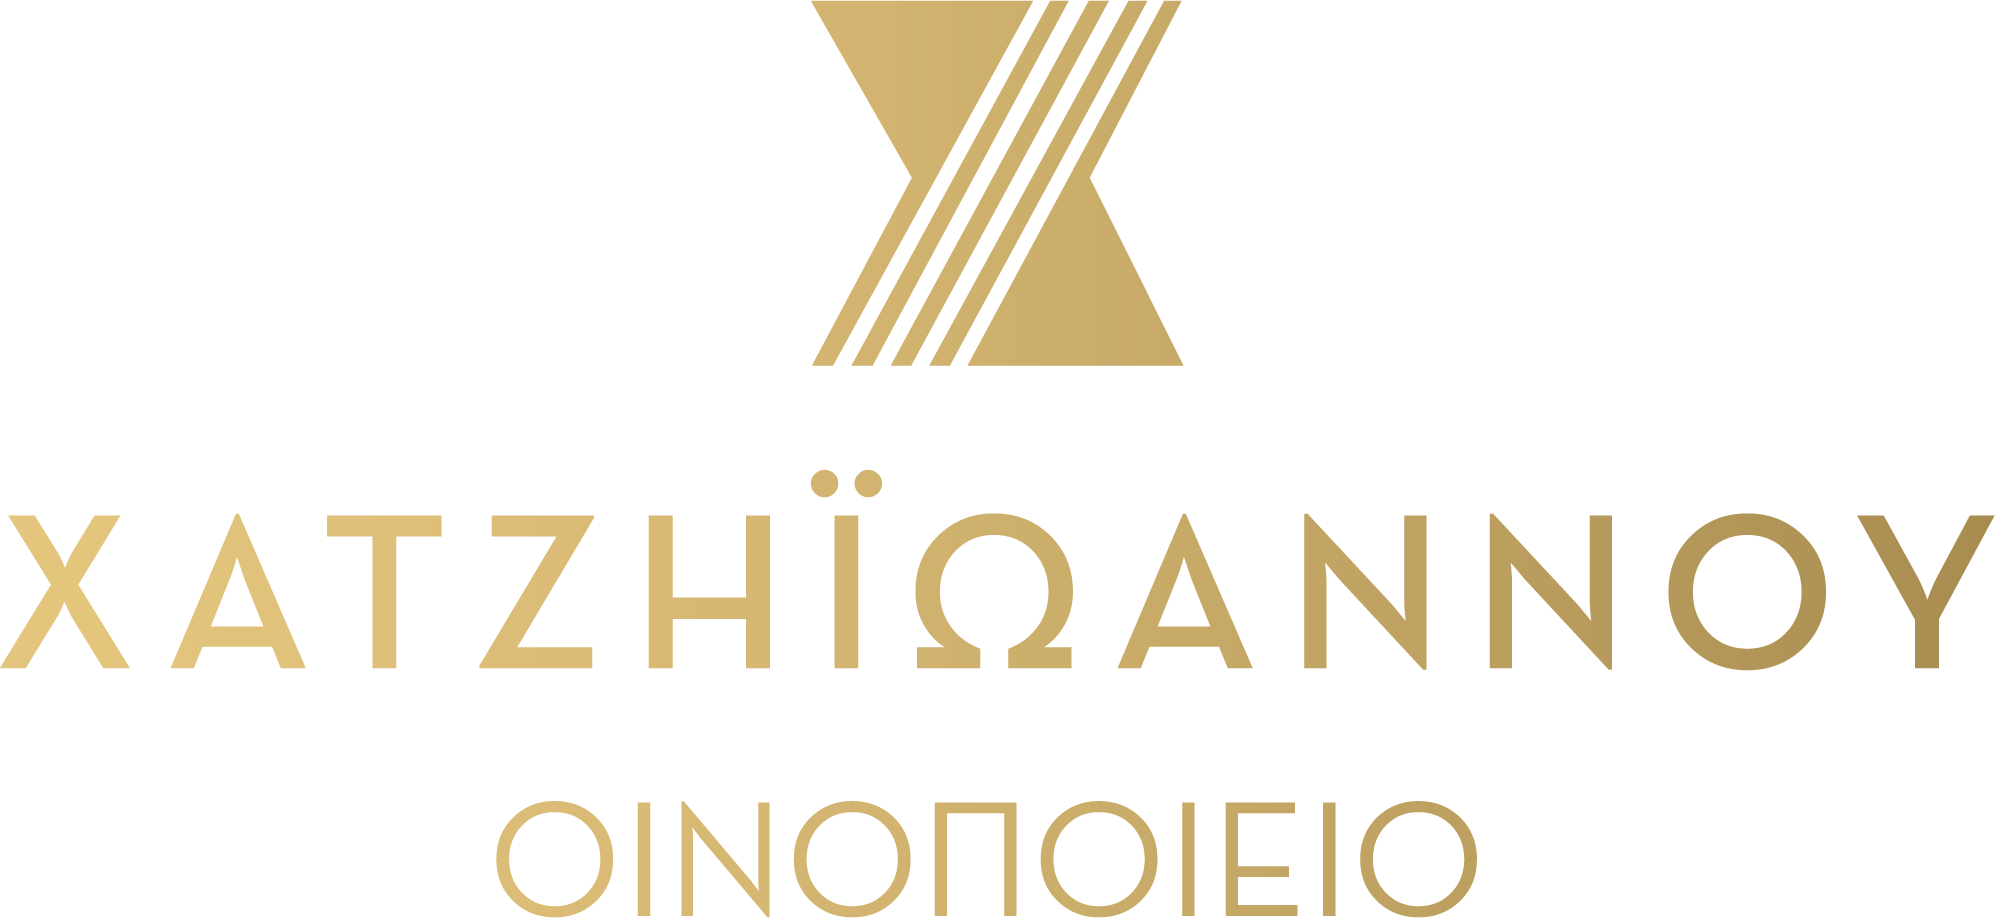 Chatziioannou Wines